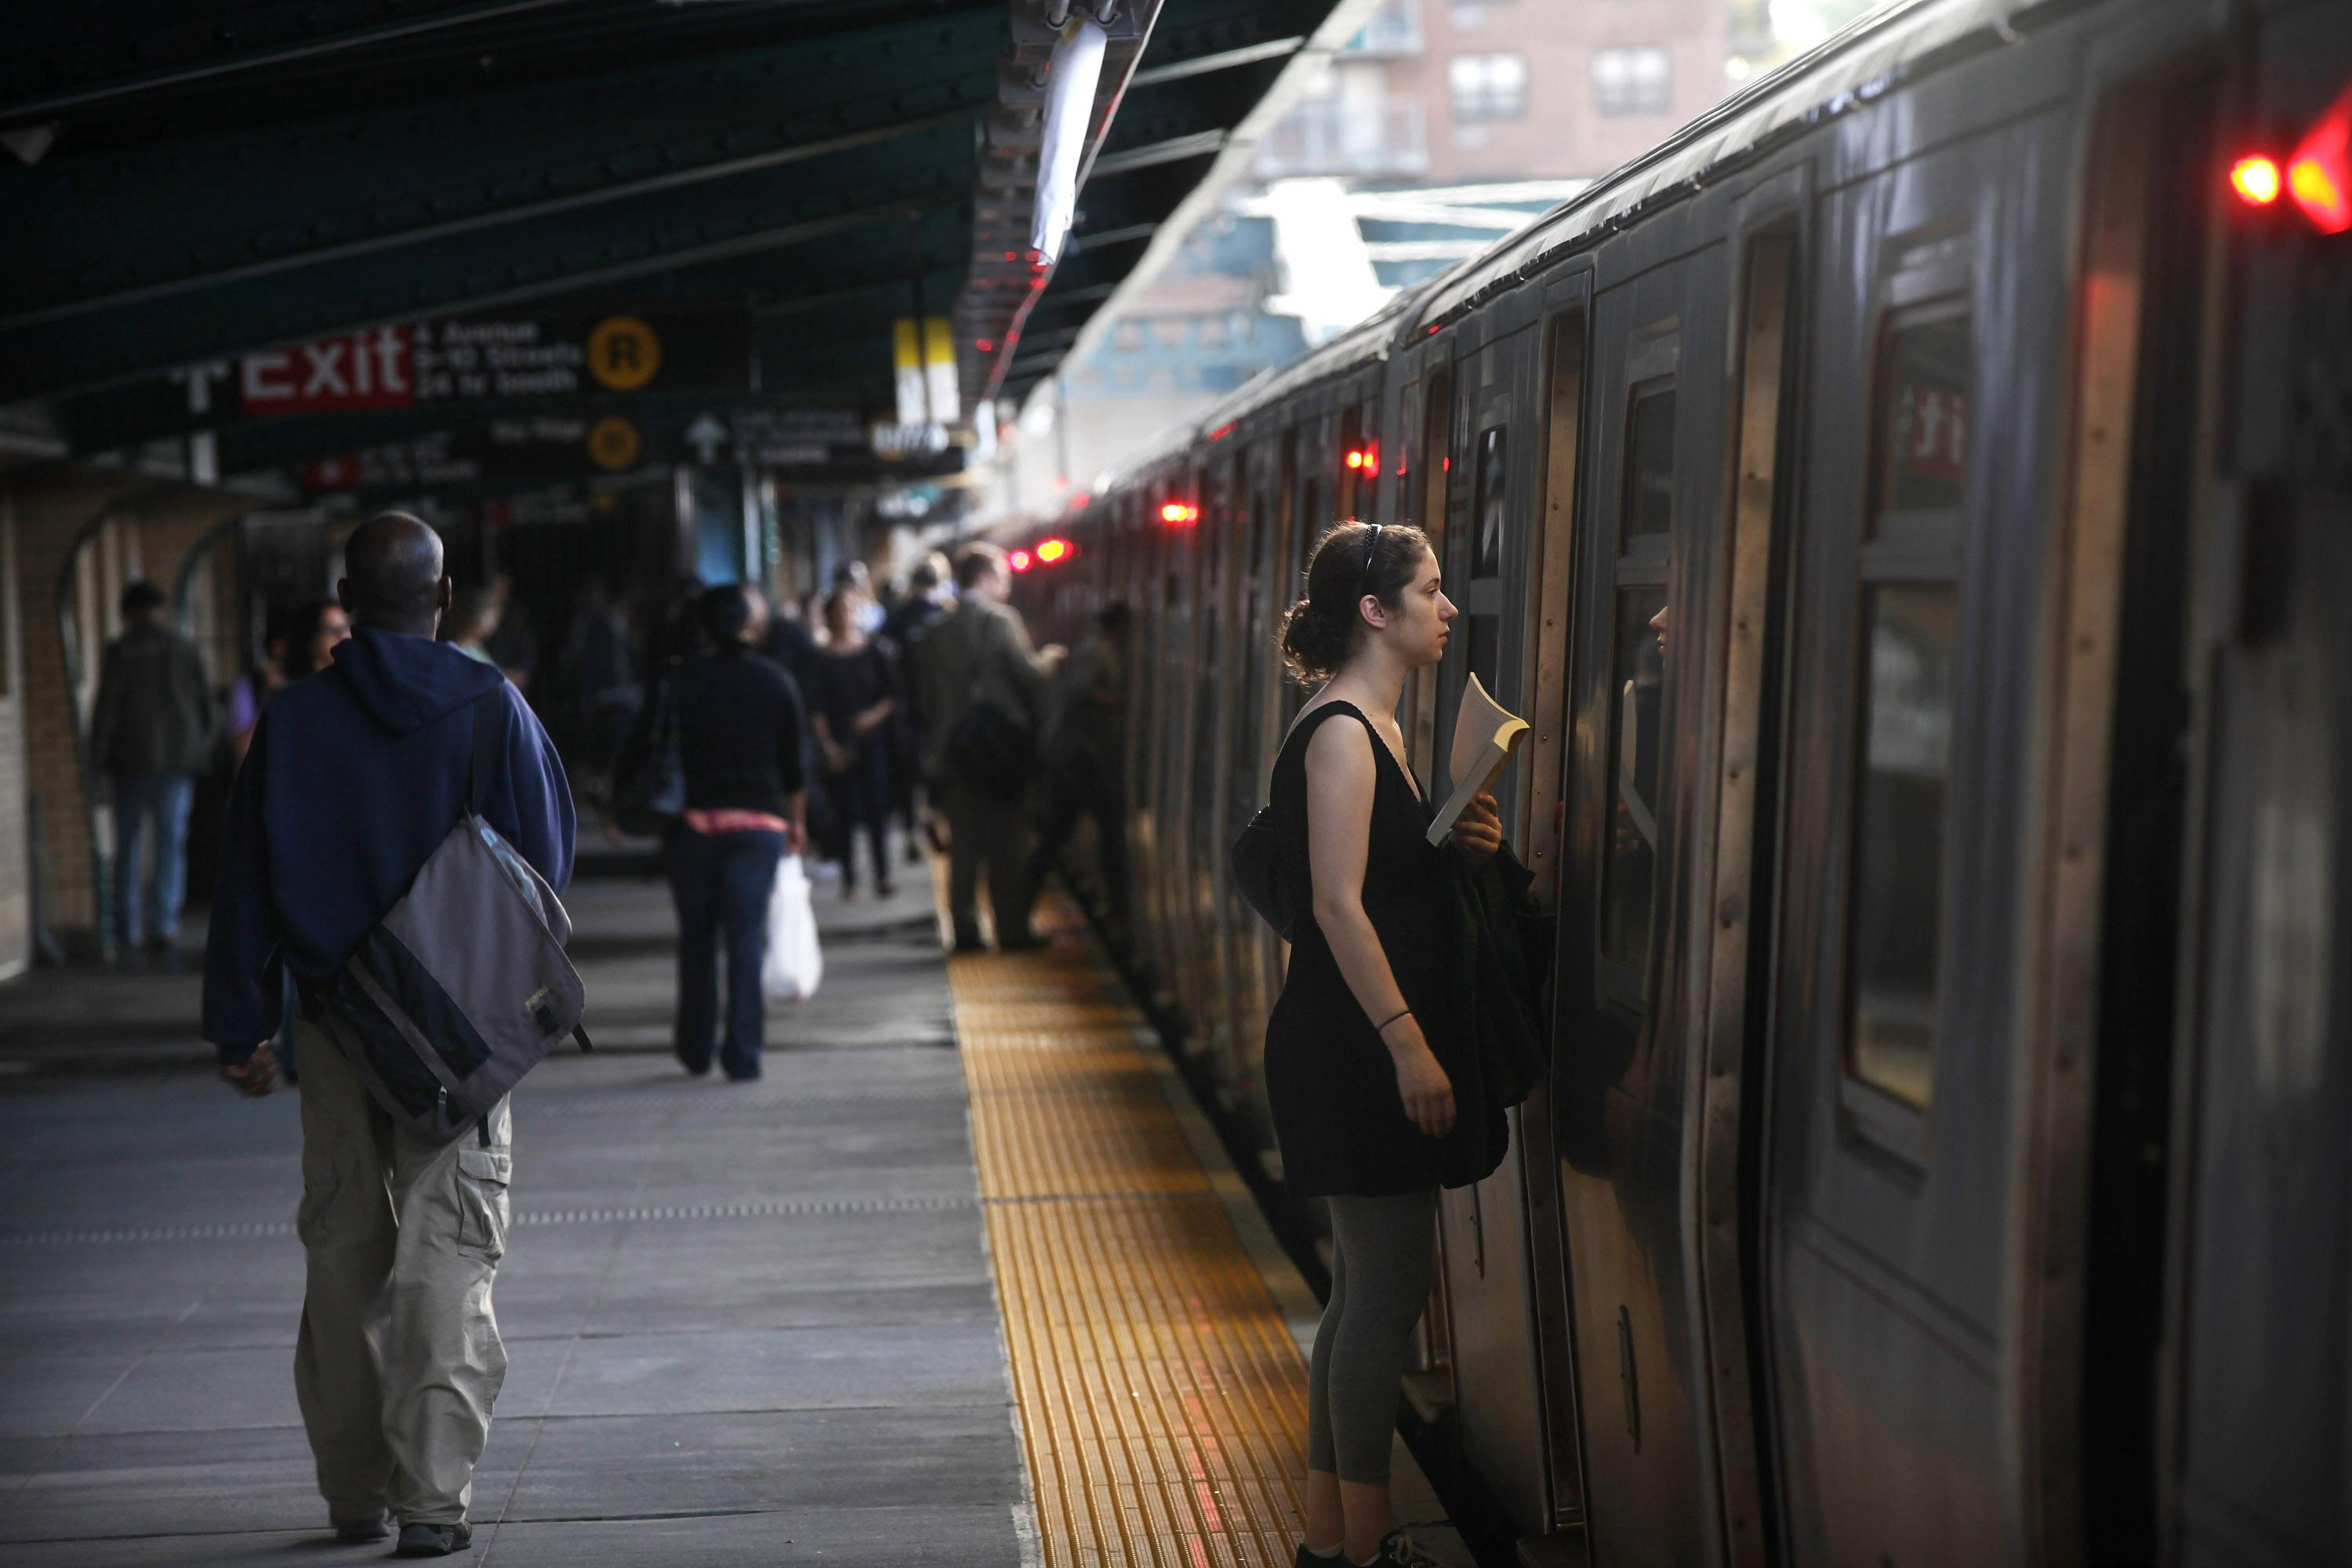 Woman rescued from underneath subway train